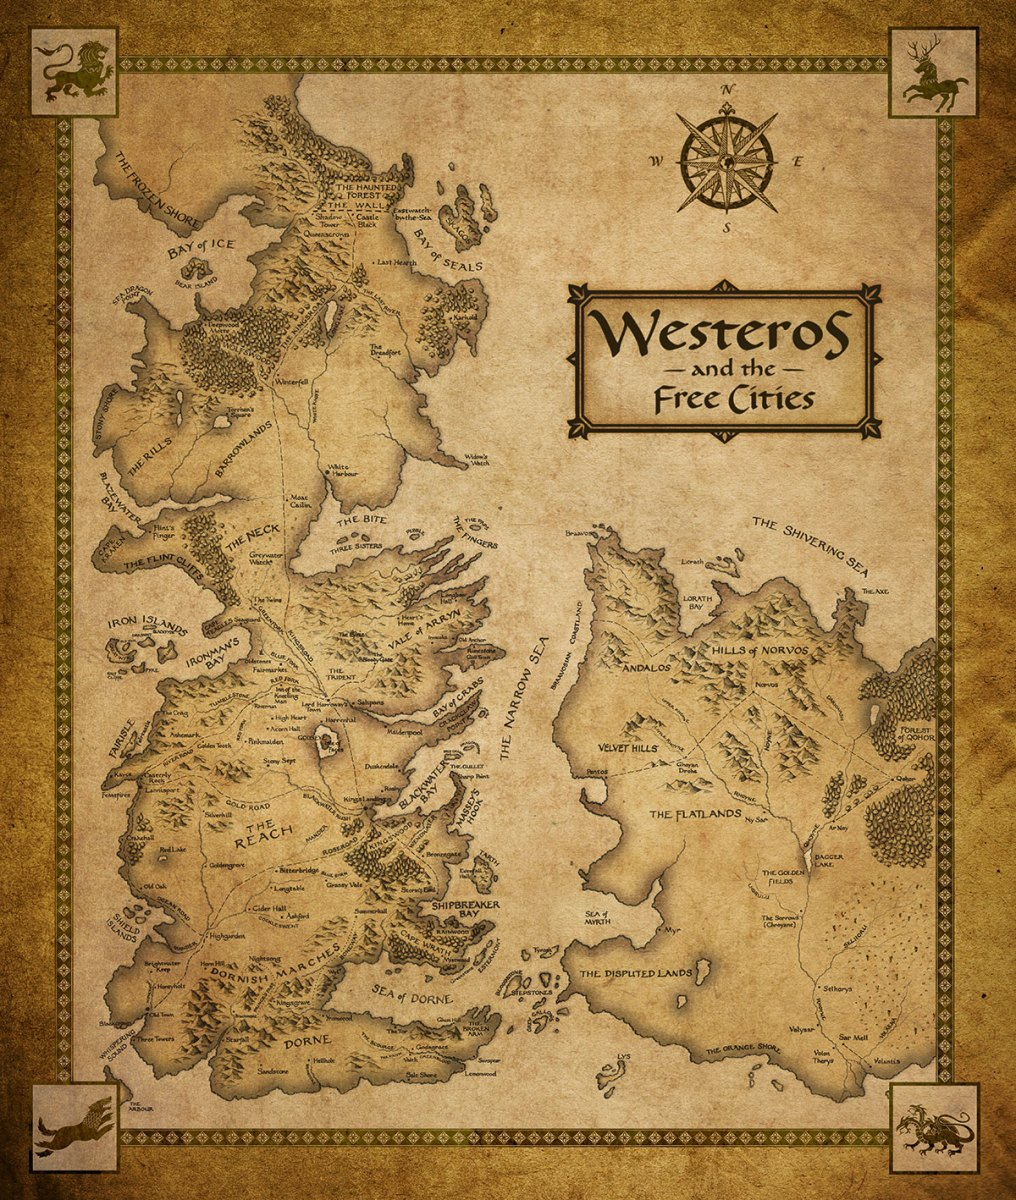 Game of Thrones Refresher Course: The Complex History of Westeros